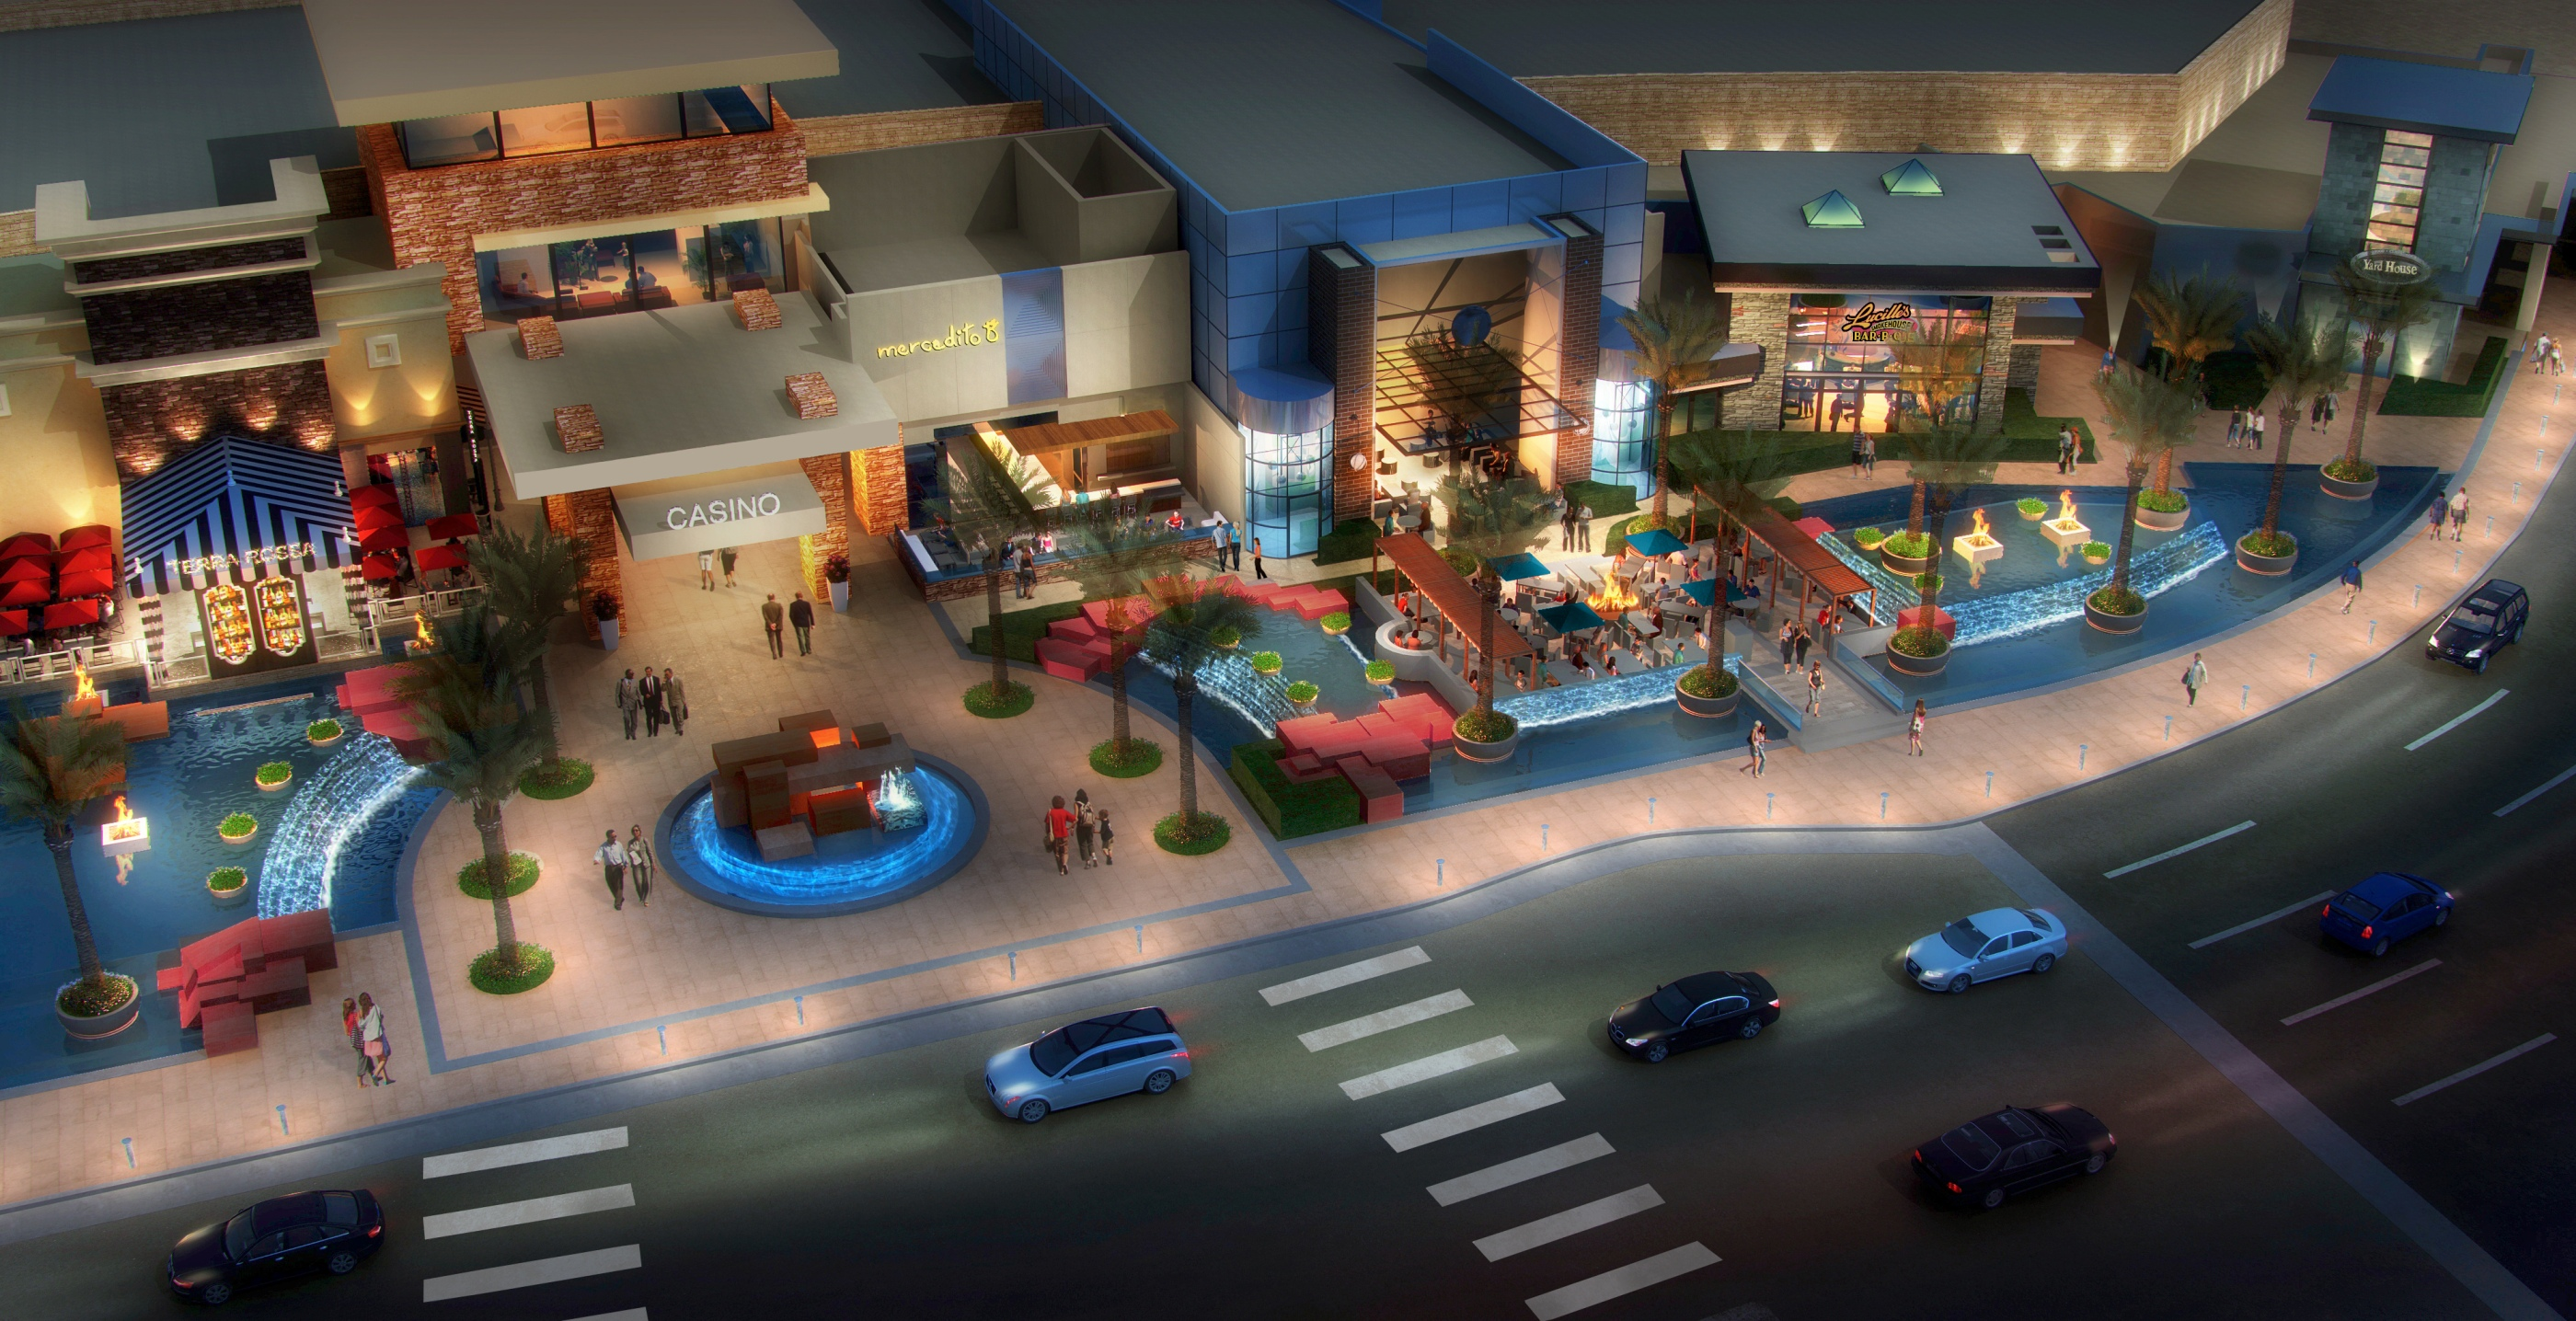 Four New Restaurants Coming to Red Rock Resort - Eater Vegas